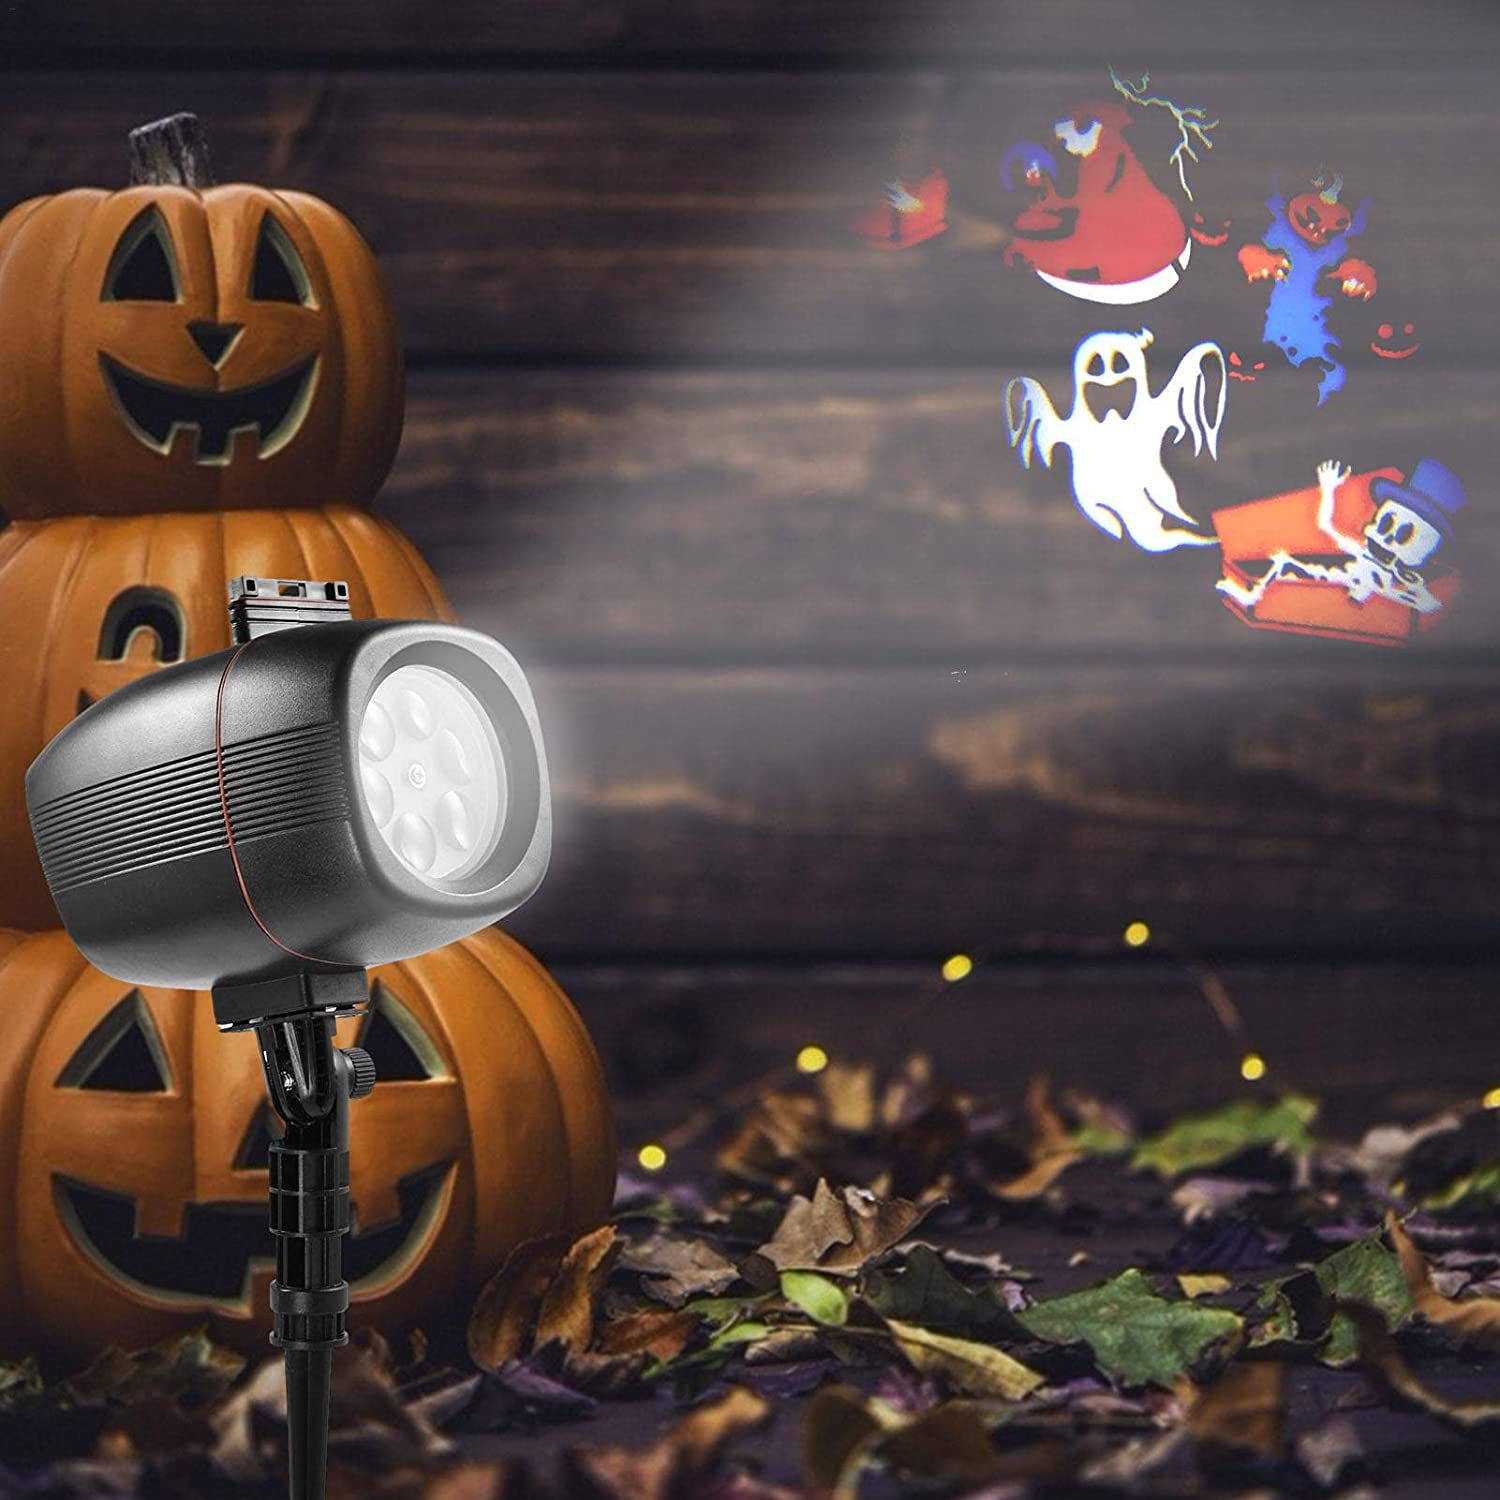 YAOJING Limited Special Price LED Projector Lights Christmas Max 71% OFF Animation Light